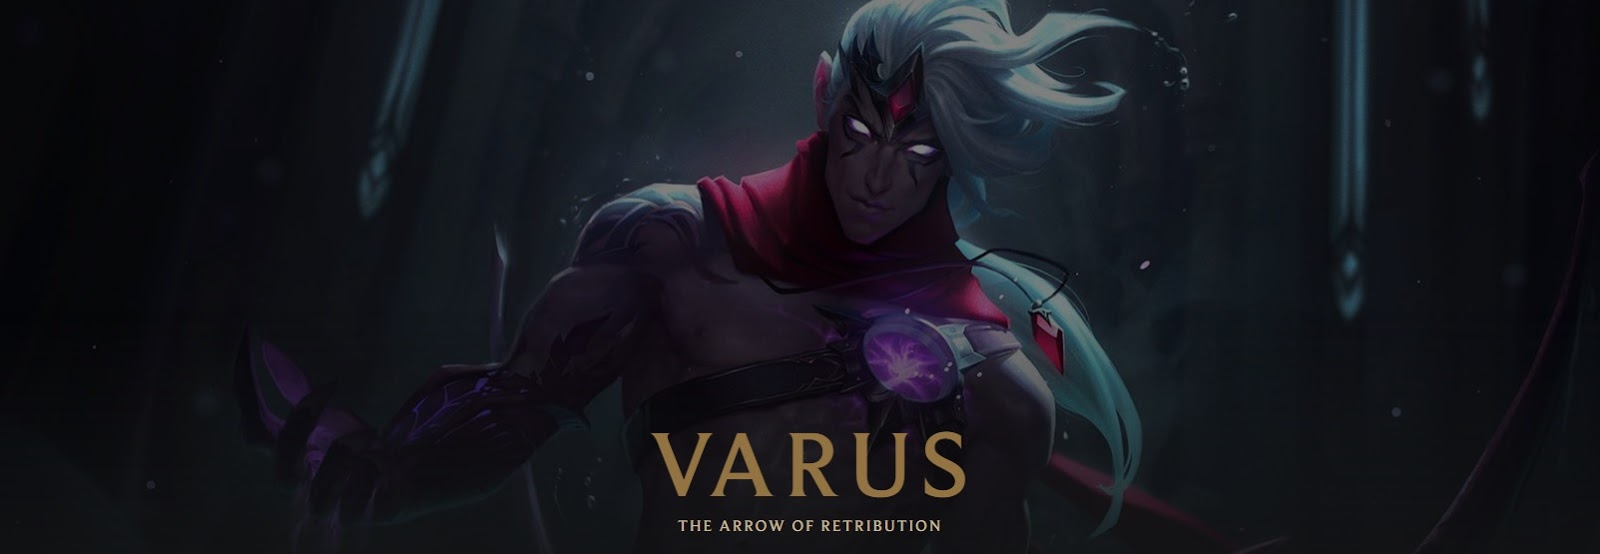 """Regardless of what he would later become, Varus was once a paragon of  loyalty and honor. A skilled archer of the ancient Shuriman empire, he was  appointed ..."